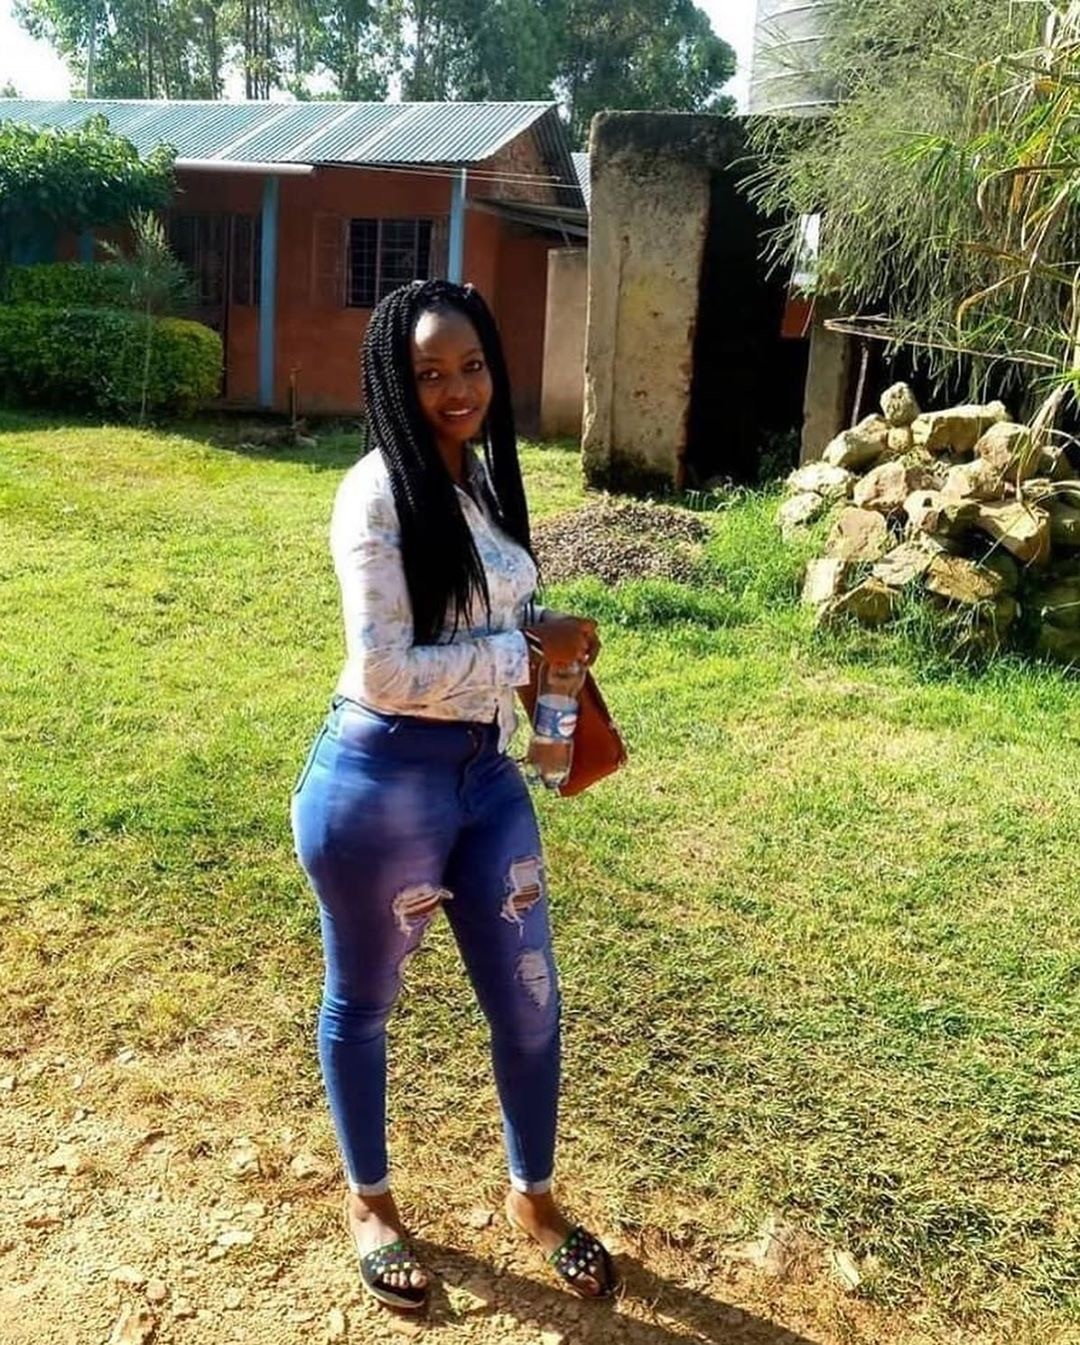 Kenyan Lady Shows Off Her HIV Test Results After Pleading For Forgiveness For Deliberately Infecting Men With The Virus